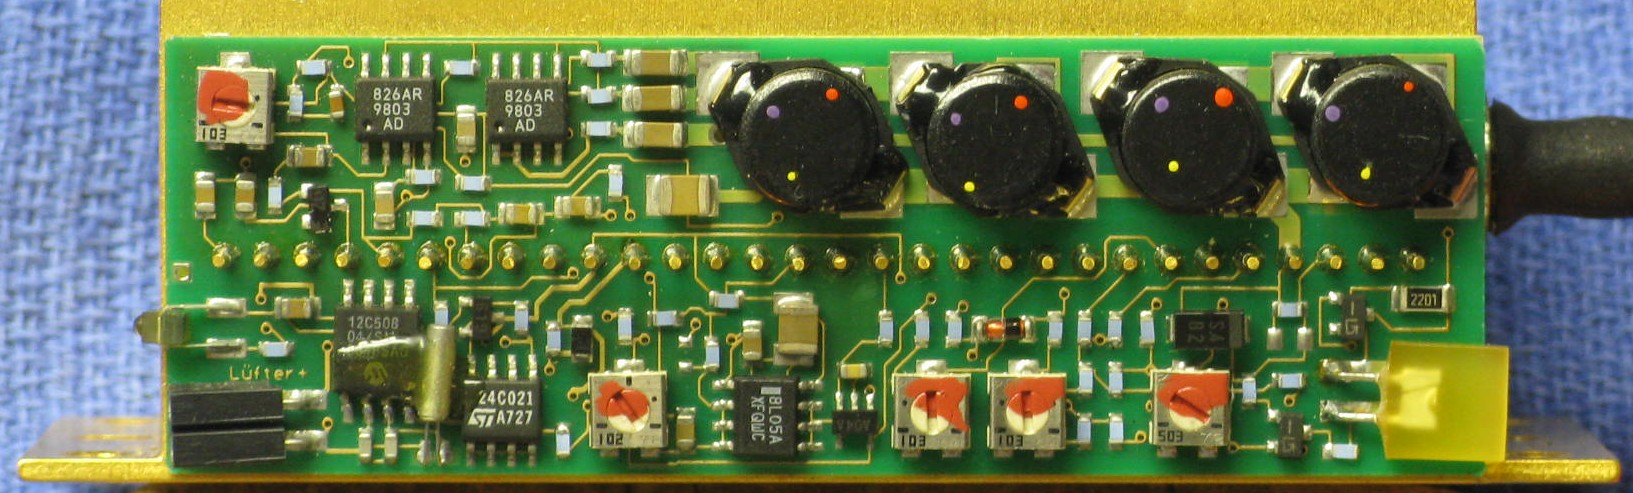 Sams Laser Faq Commercial Solid State Lasers Robotics Prometheus Pcb Maker Automates Circuit Board Creation Video